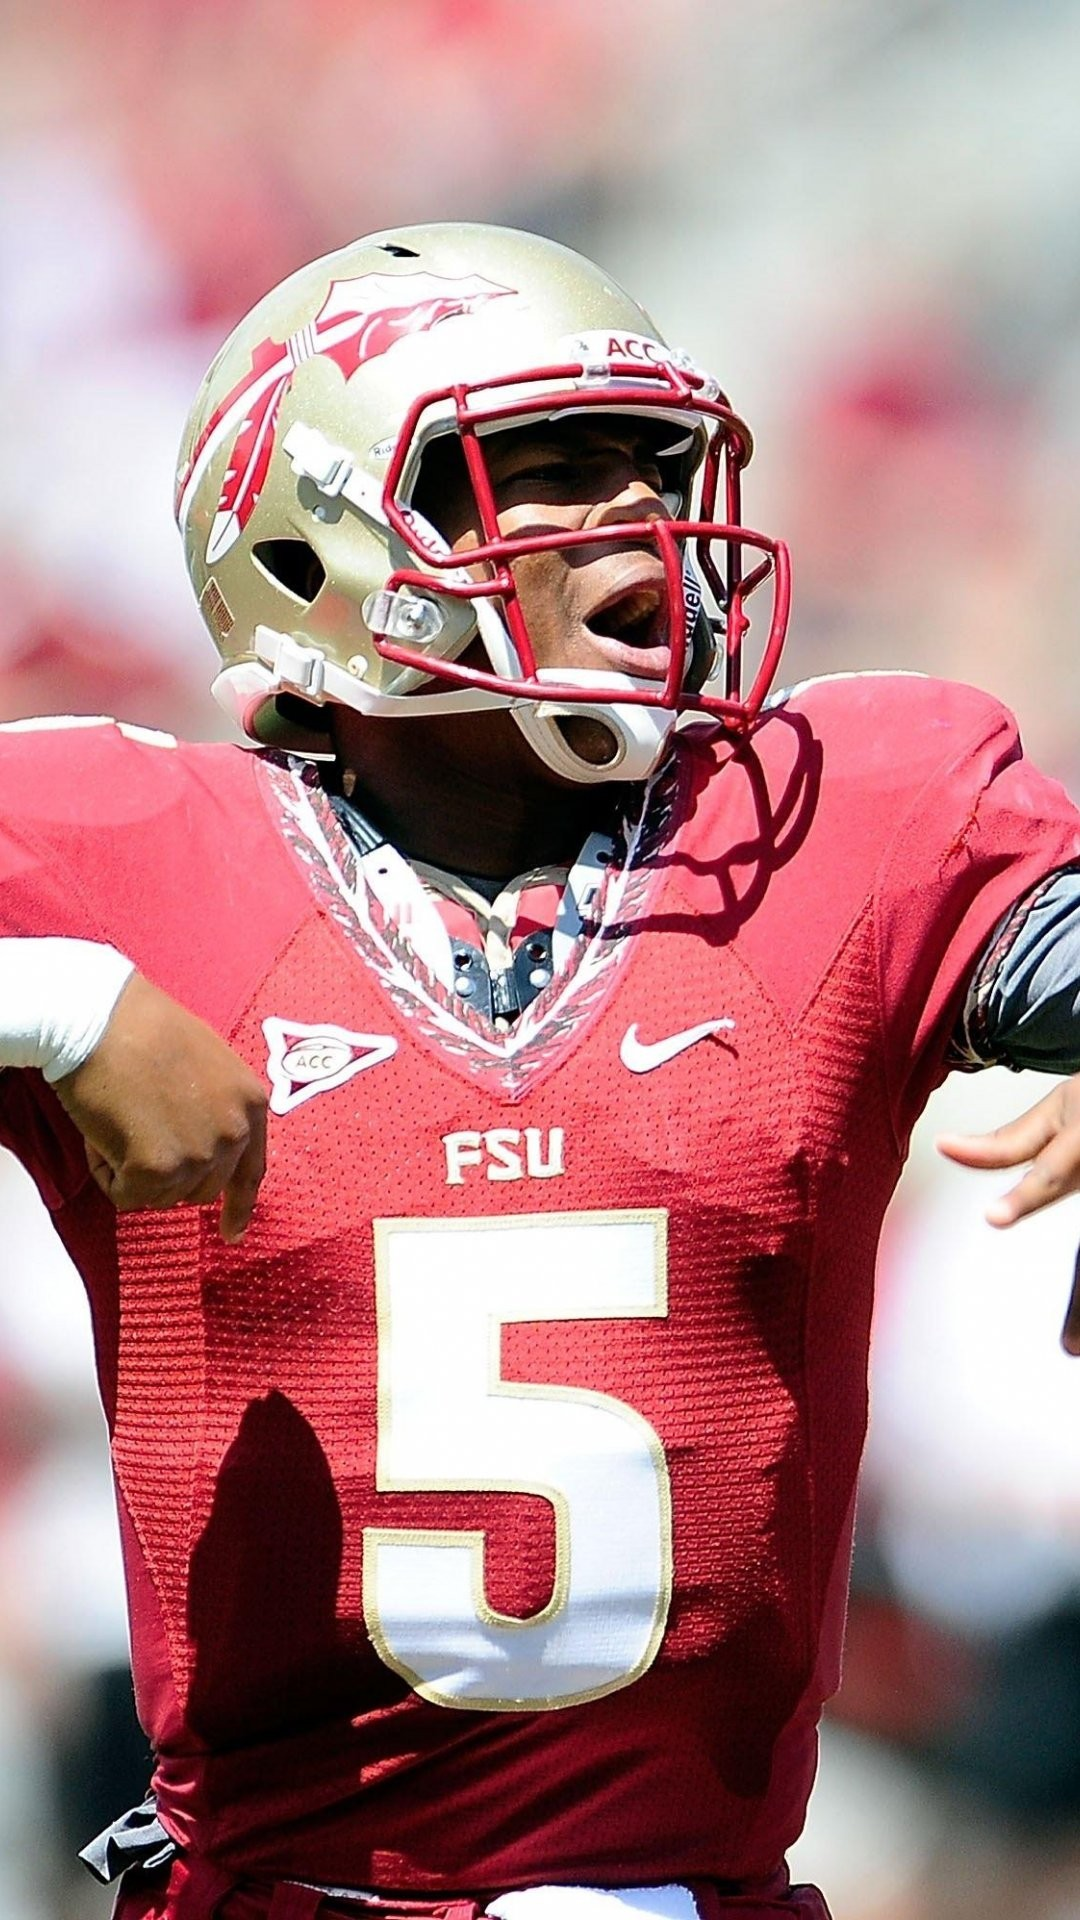 Florida state seminoles wallpaper 76 images 1920x1080 ohio state 2 ohio state football wallpaper 28723995 fanpop voltagebd Choice Image